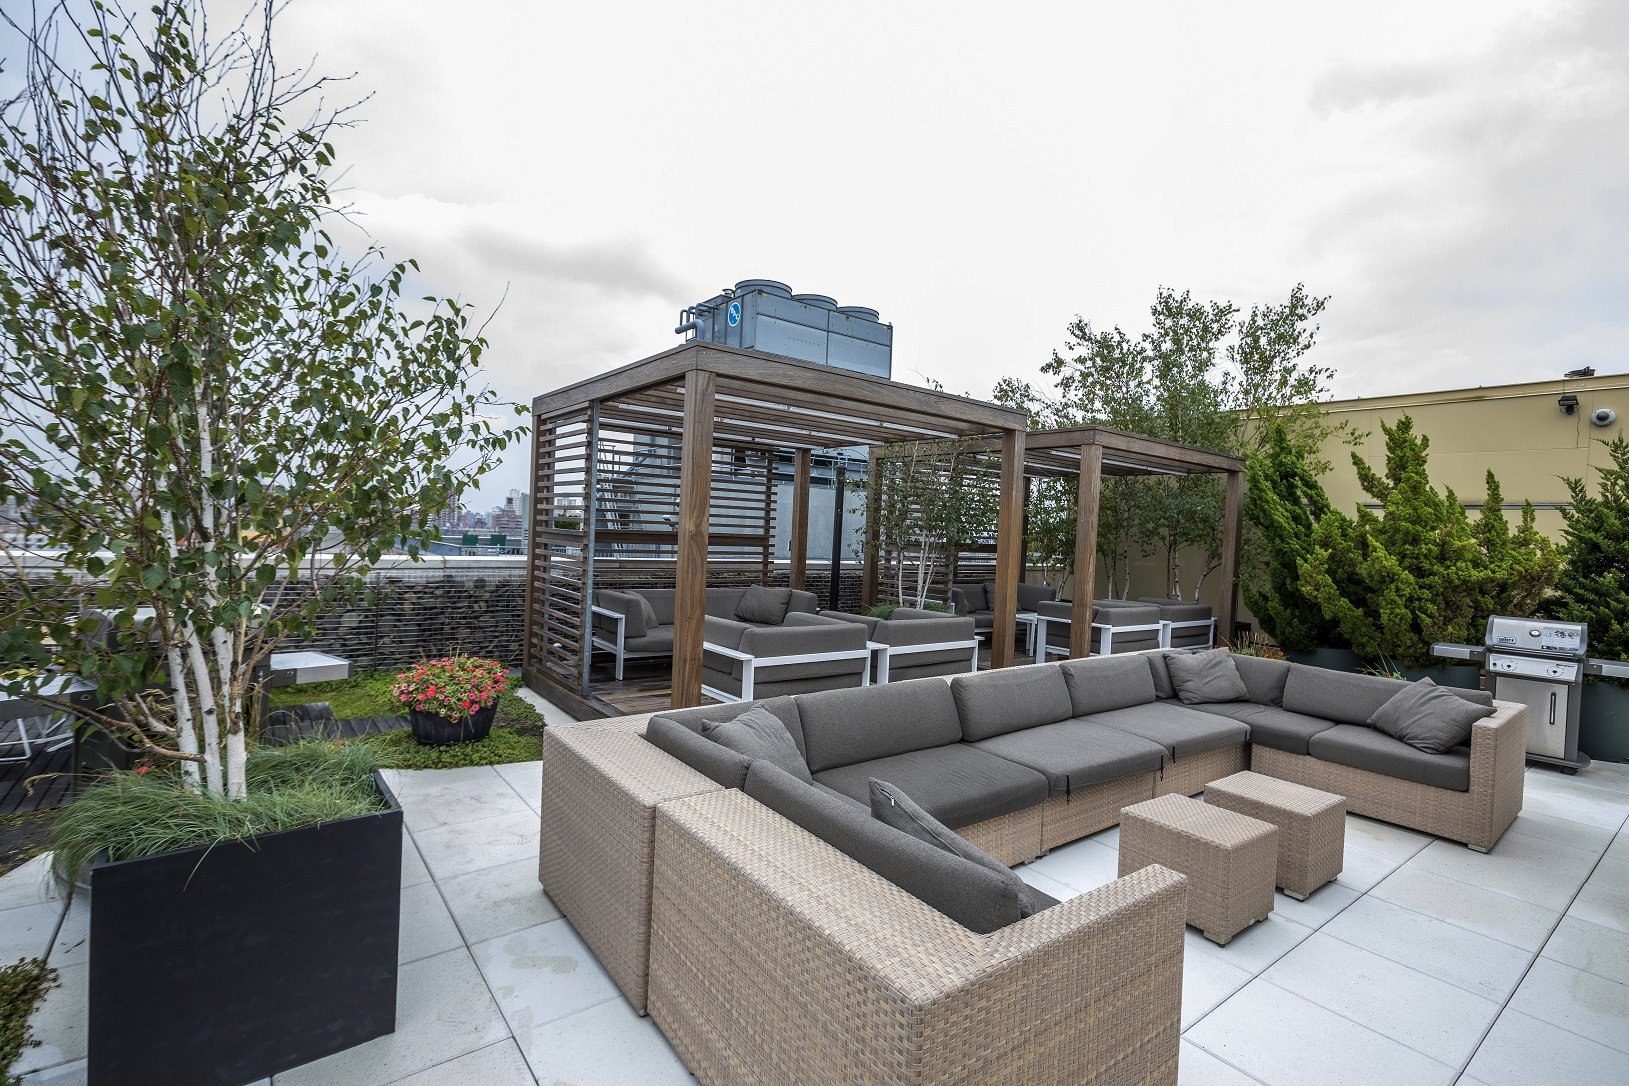 Expertly maintained specimen trees mix with perennials to encompass this sizeable outdoor rooftop, providing entertainment area